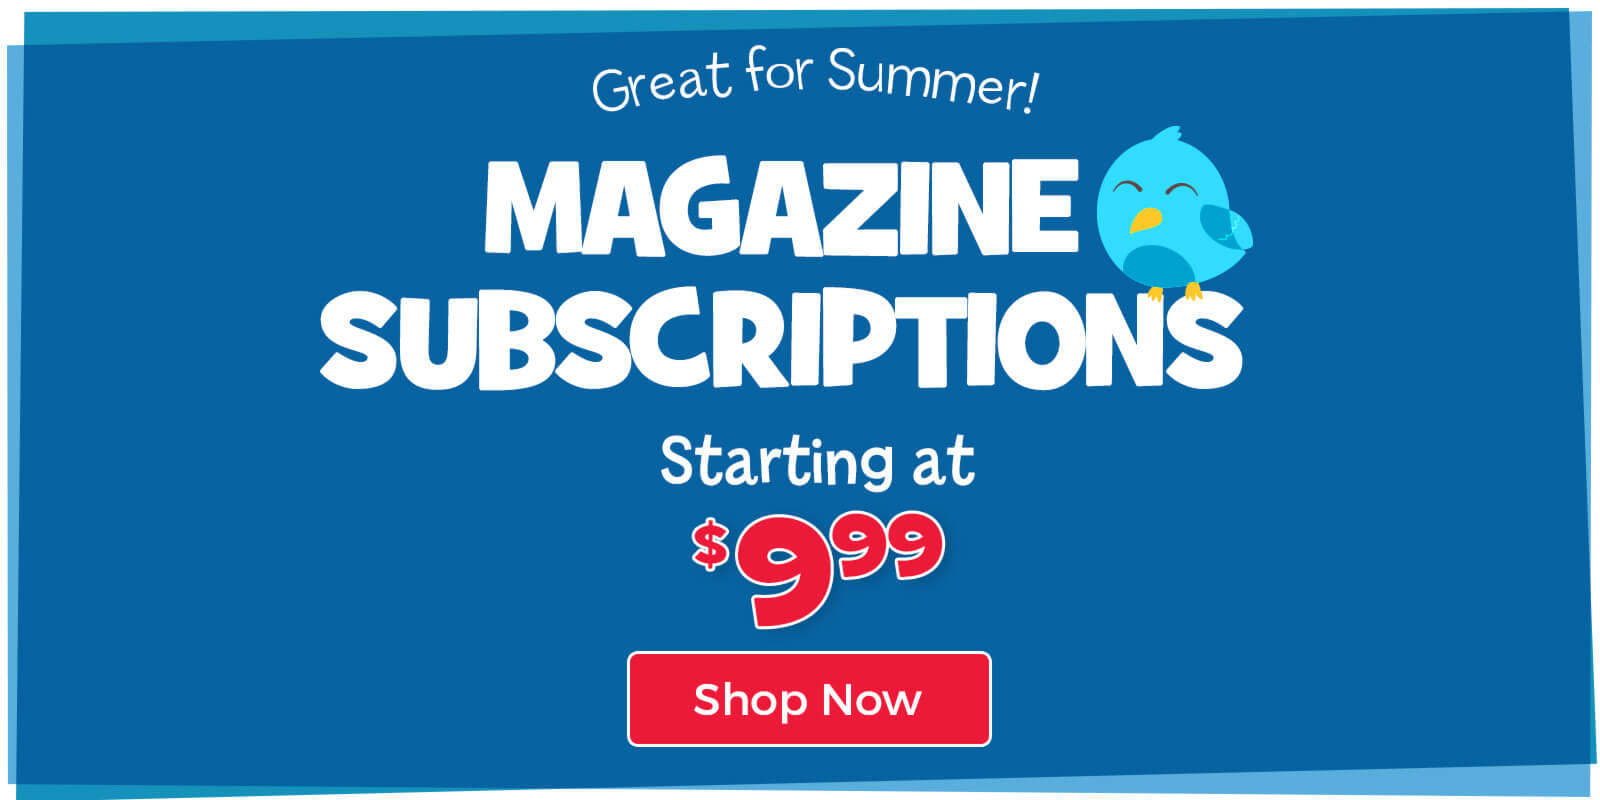 Magazine subscriptions starting at $9.99 are great for summer